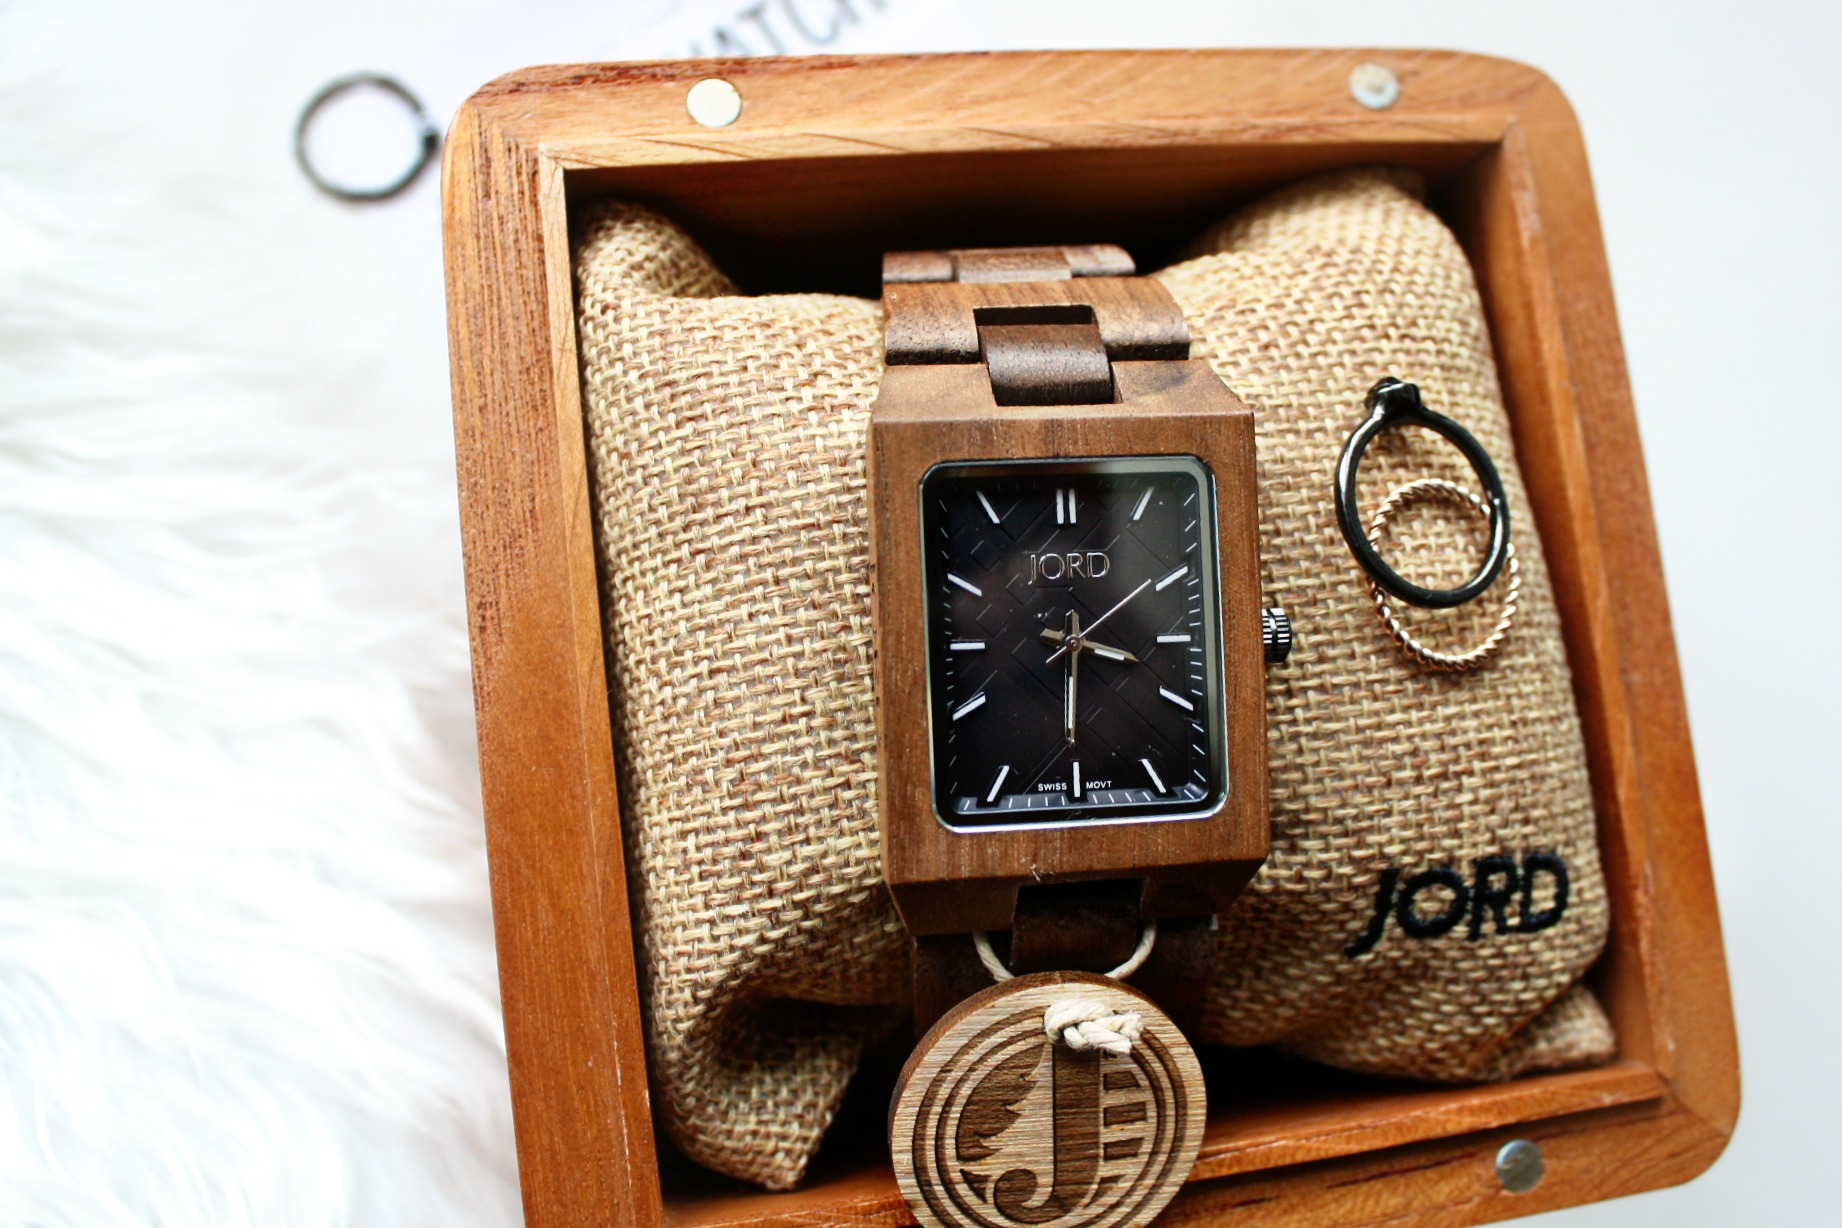 JORD - Men's Wood watch review and GIVEAWAY!